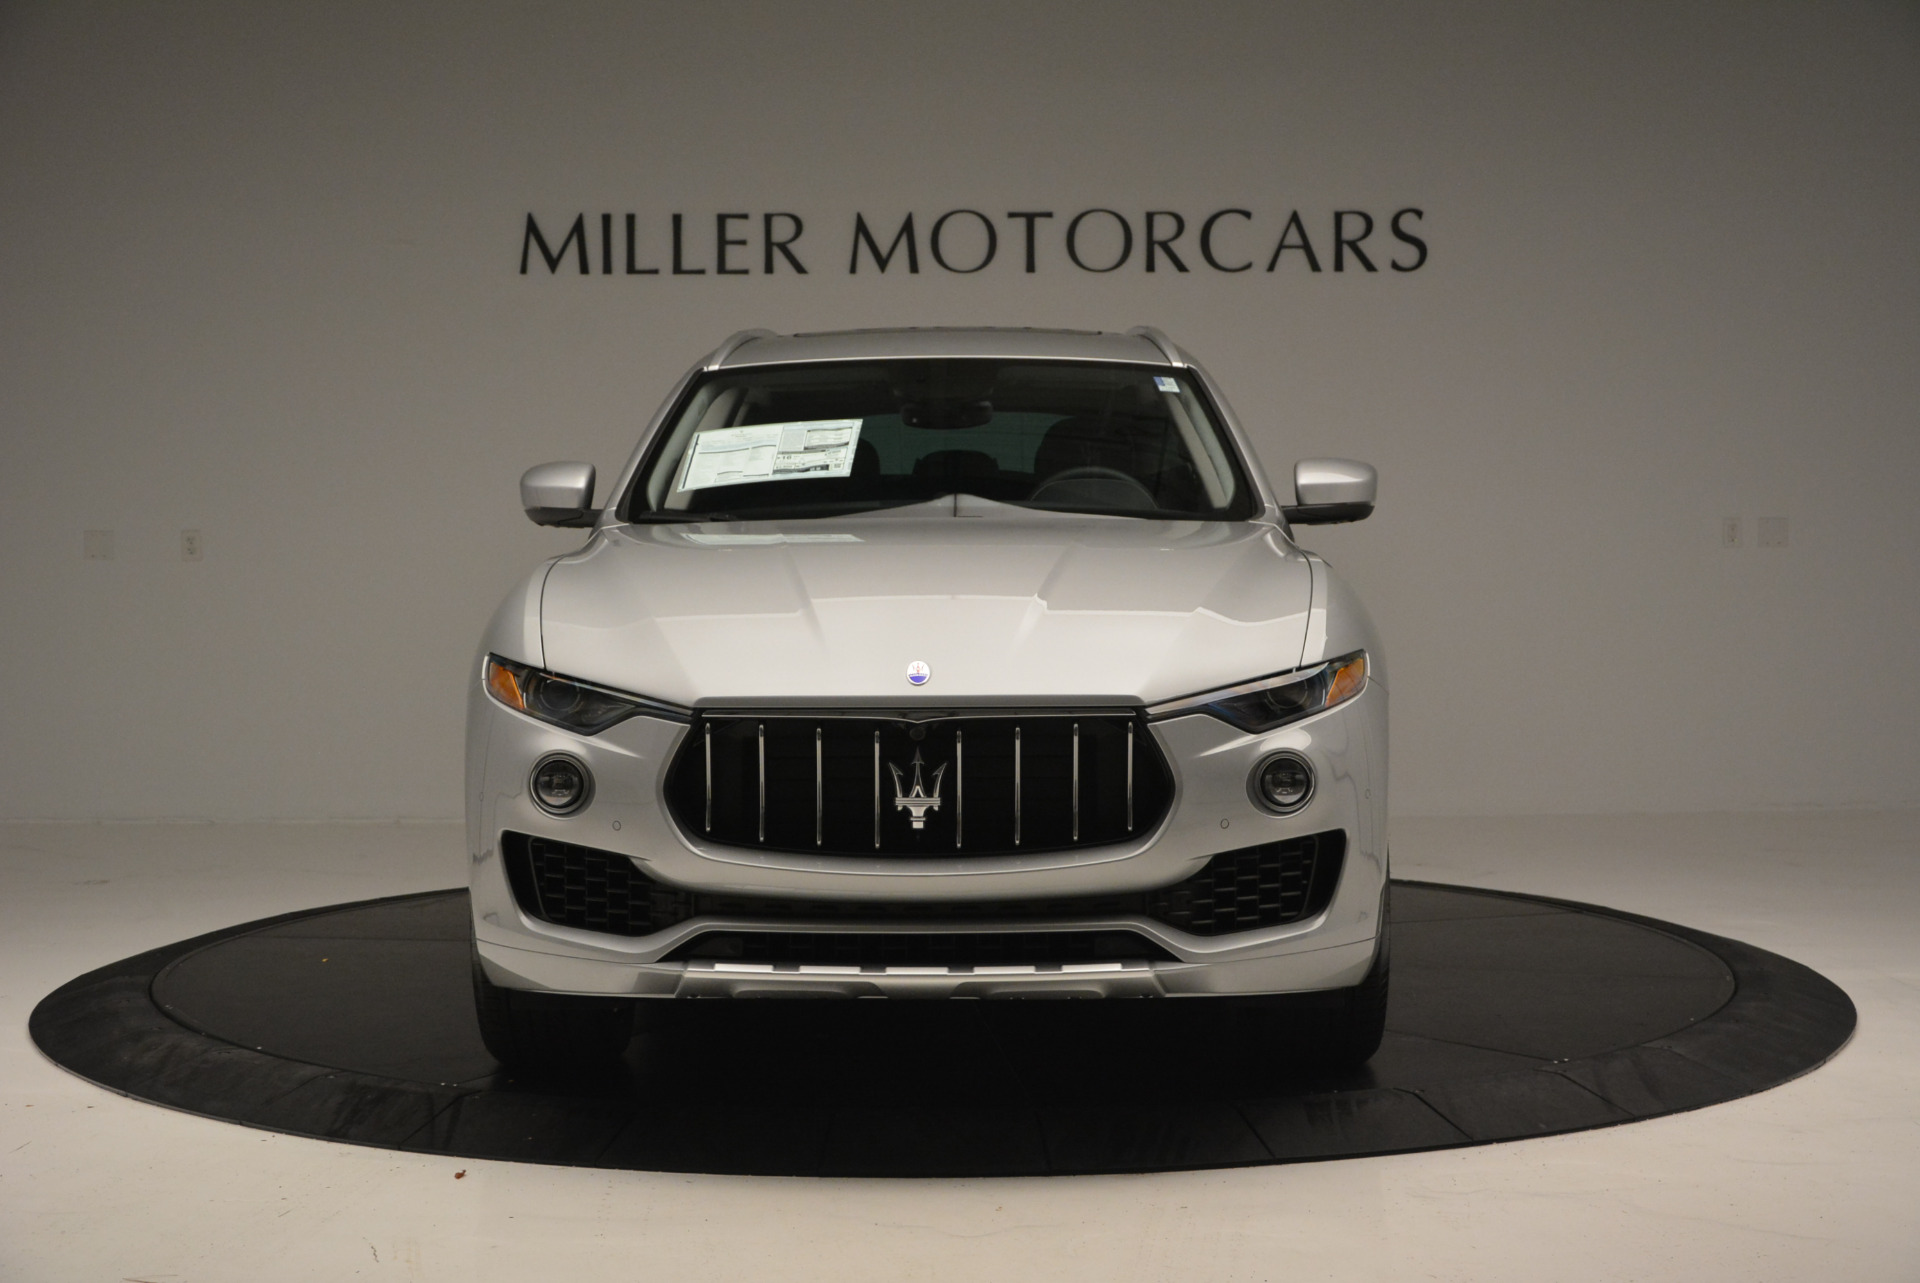 New 2017 Maserati Levante 350hp For Sale In Greenwich, CT 584_p12